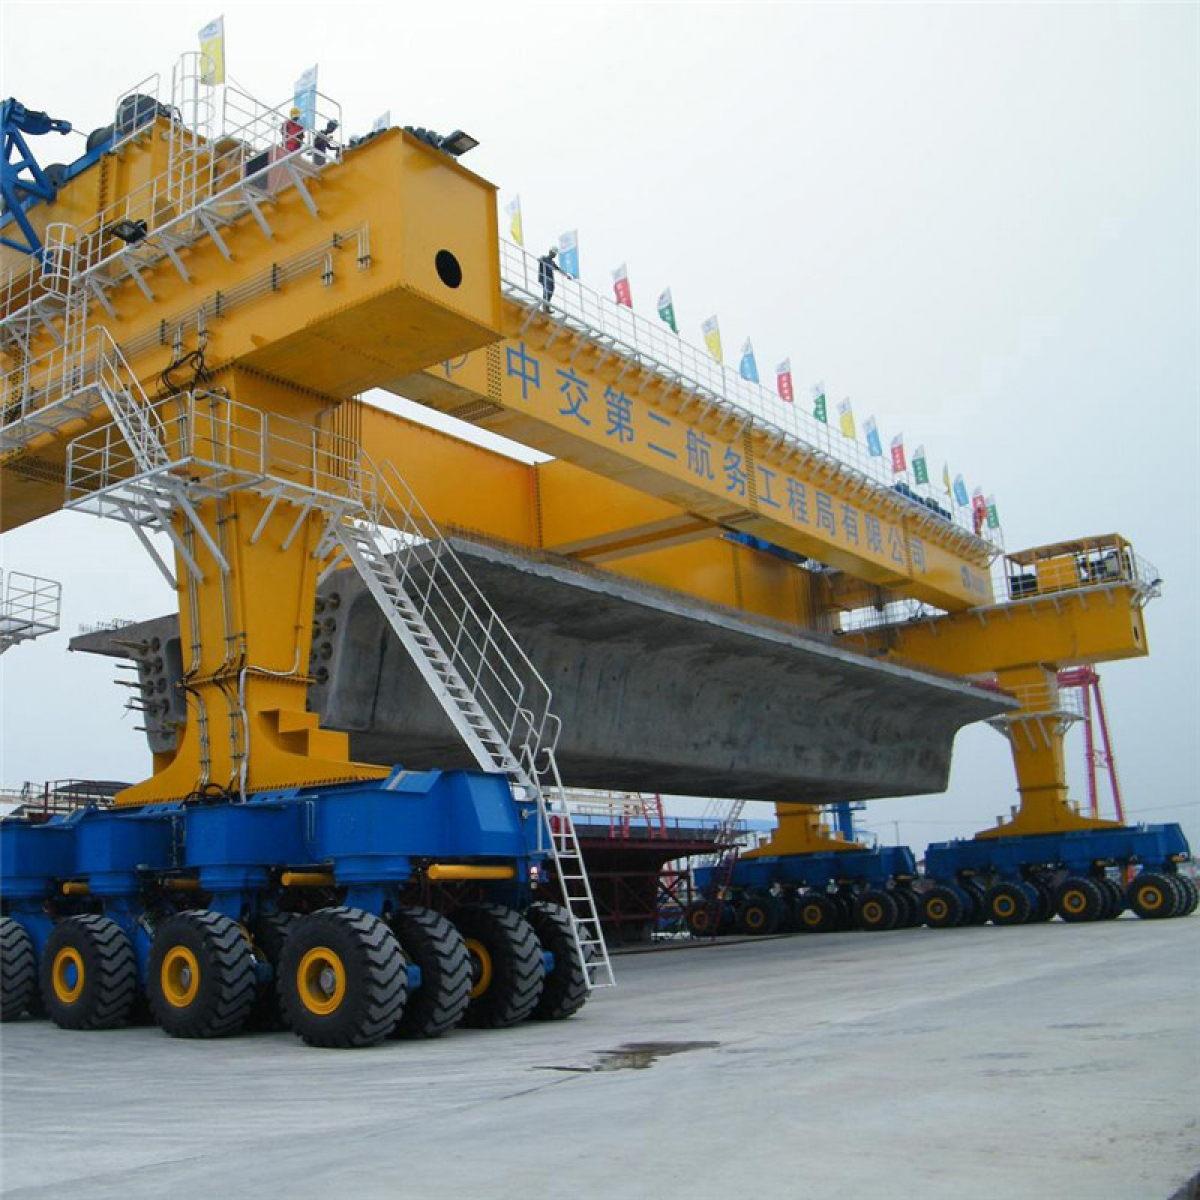 Rubber Tyred Gantry Cranes Translate : Rubber tyred gantry crane ton container loading